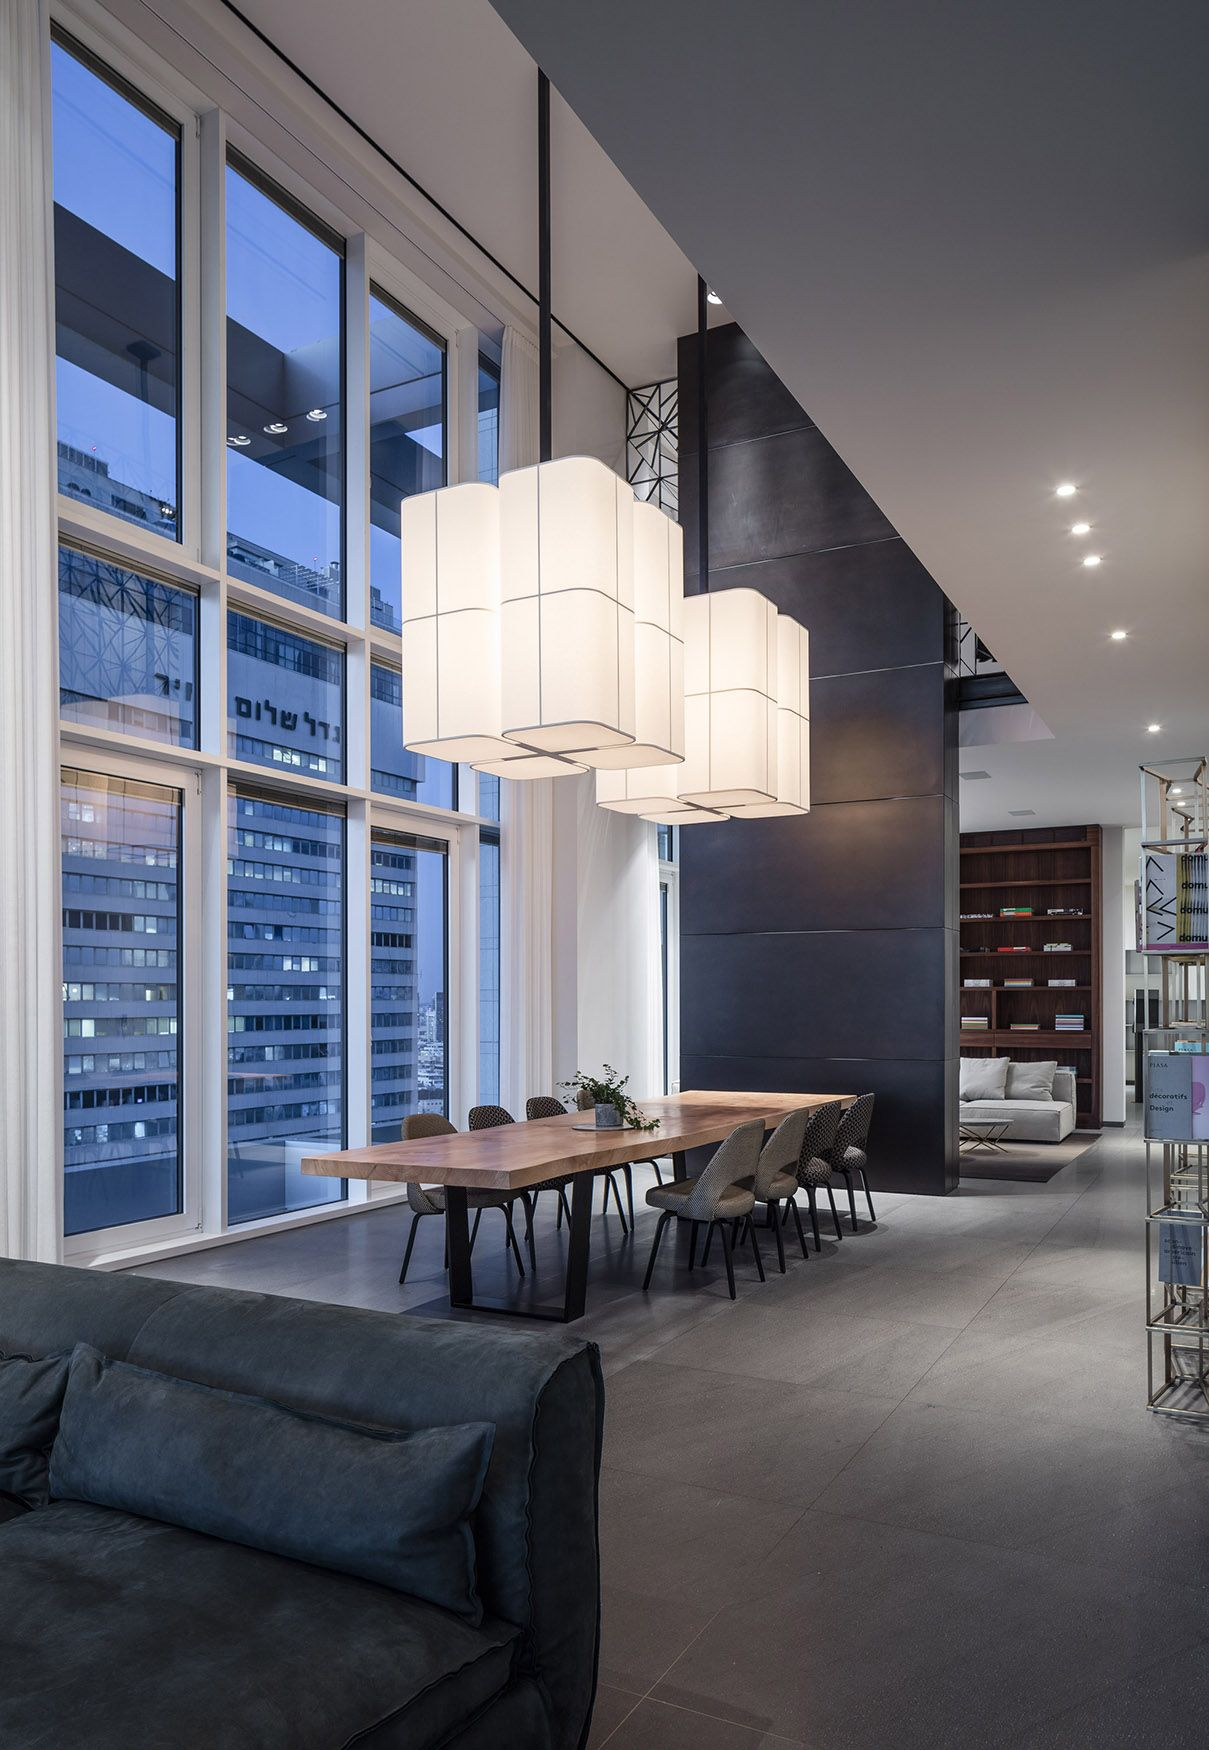 An apartment in tlv  Lighting designer Orly Avron Alkabes  Architecture Pitsou Kedem & An apartment in tlv  Lighting designer: Orly Avron Alkabes ... azcodes.com